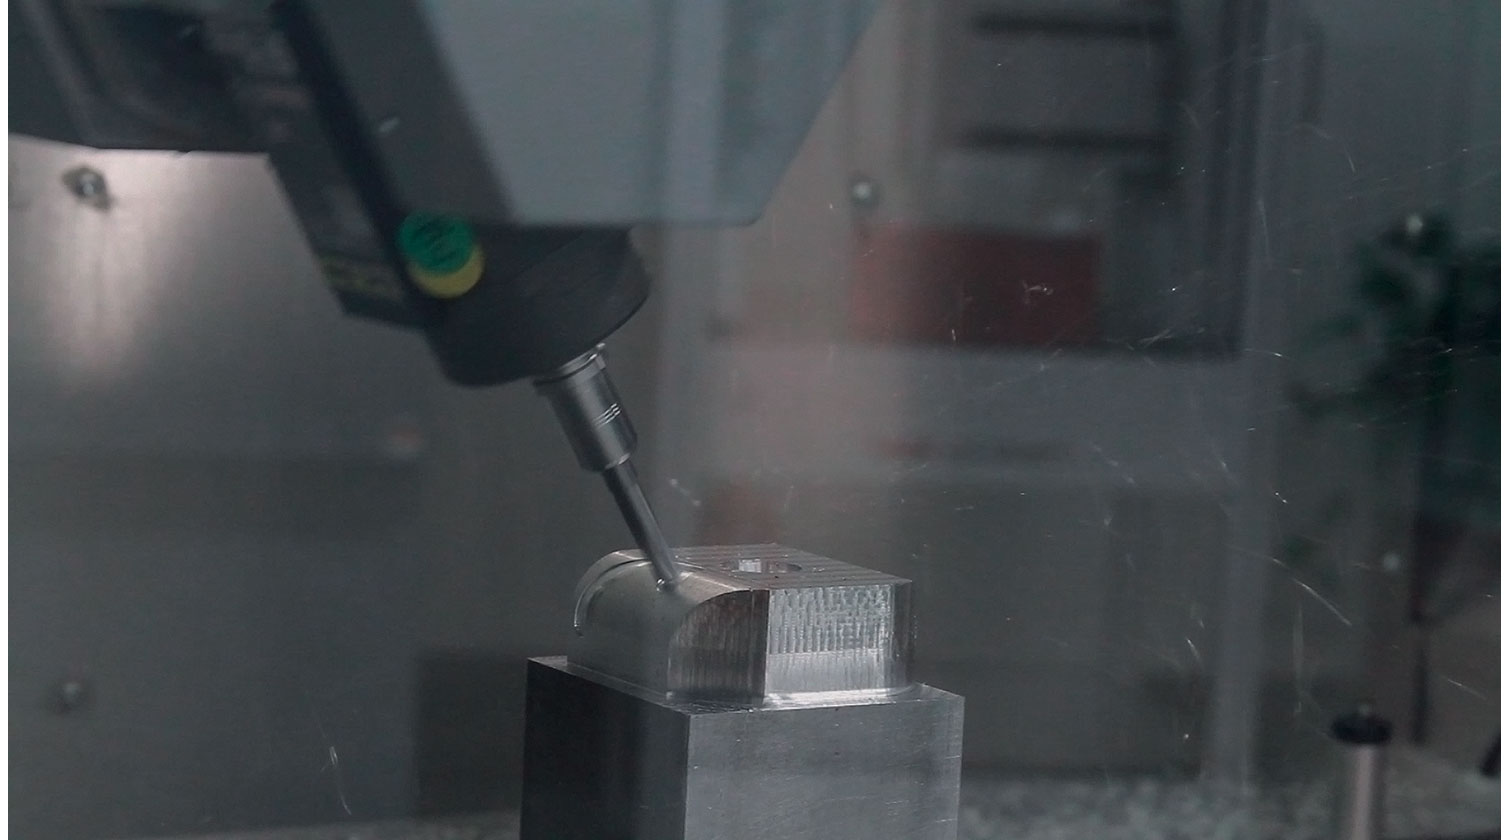 INT micro milling rapid prototyping CNC Imes Icore Platinum X5 milling